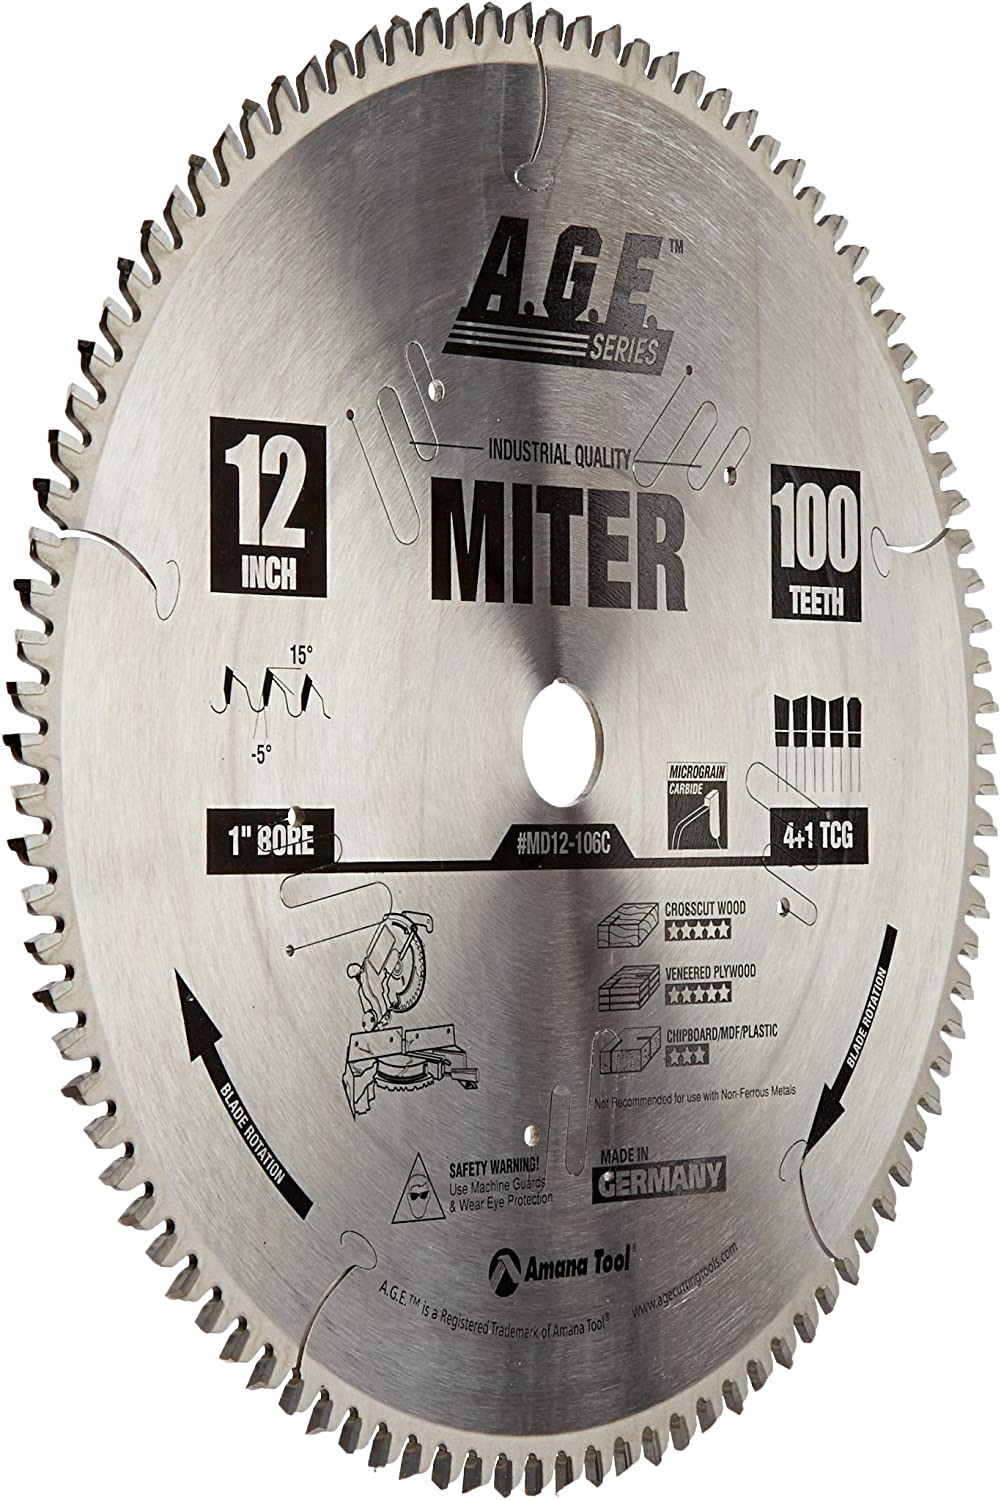 Amana Tool A.G.E. Series MD12-106 Heavy Duty Blade